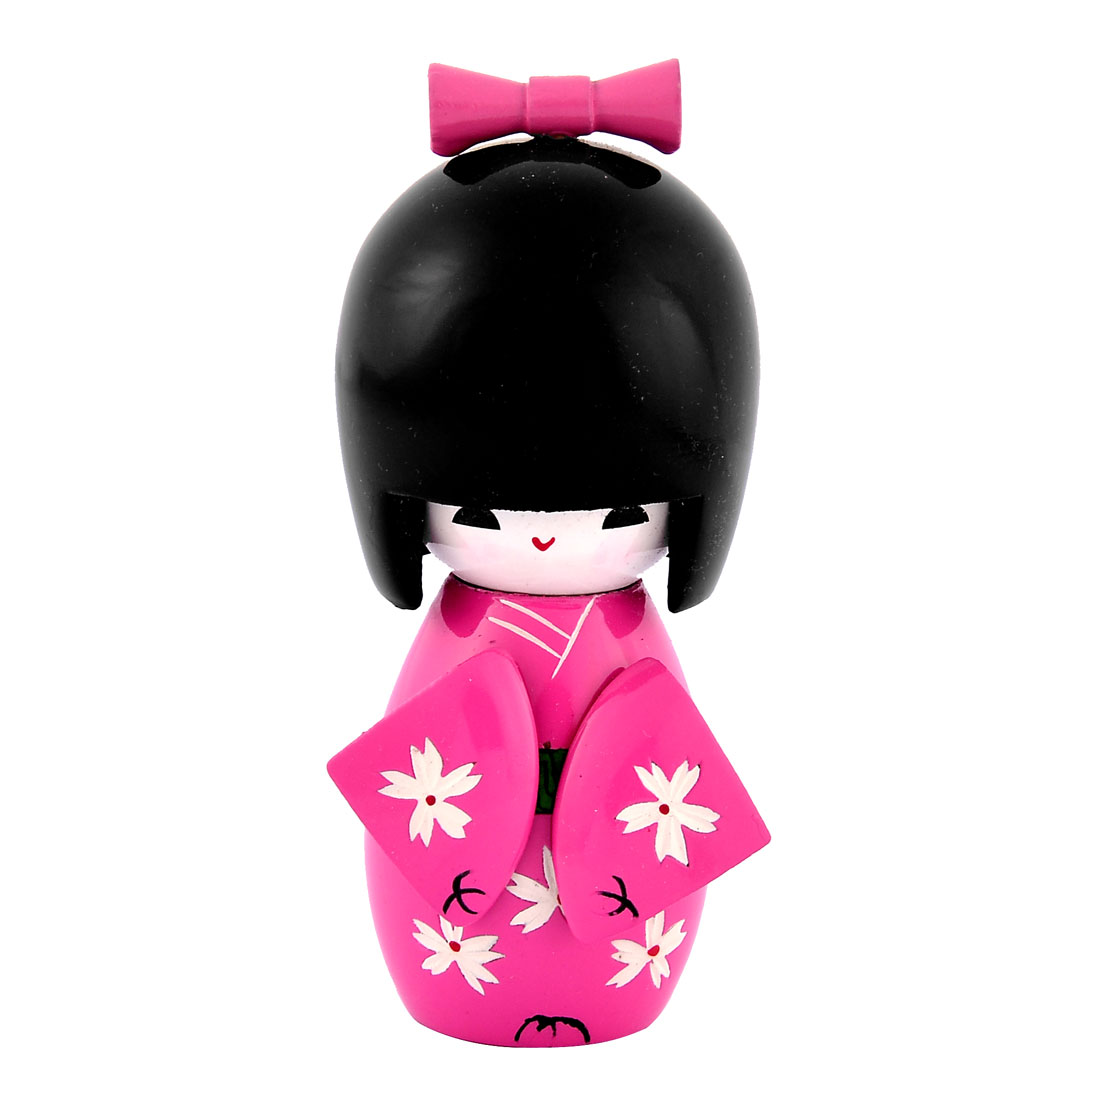 Home Flower Engraved Wooden Kimono Decorative Doll Japanese Kokeshi Pink